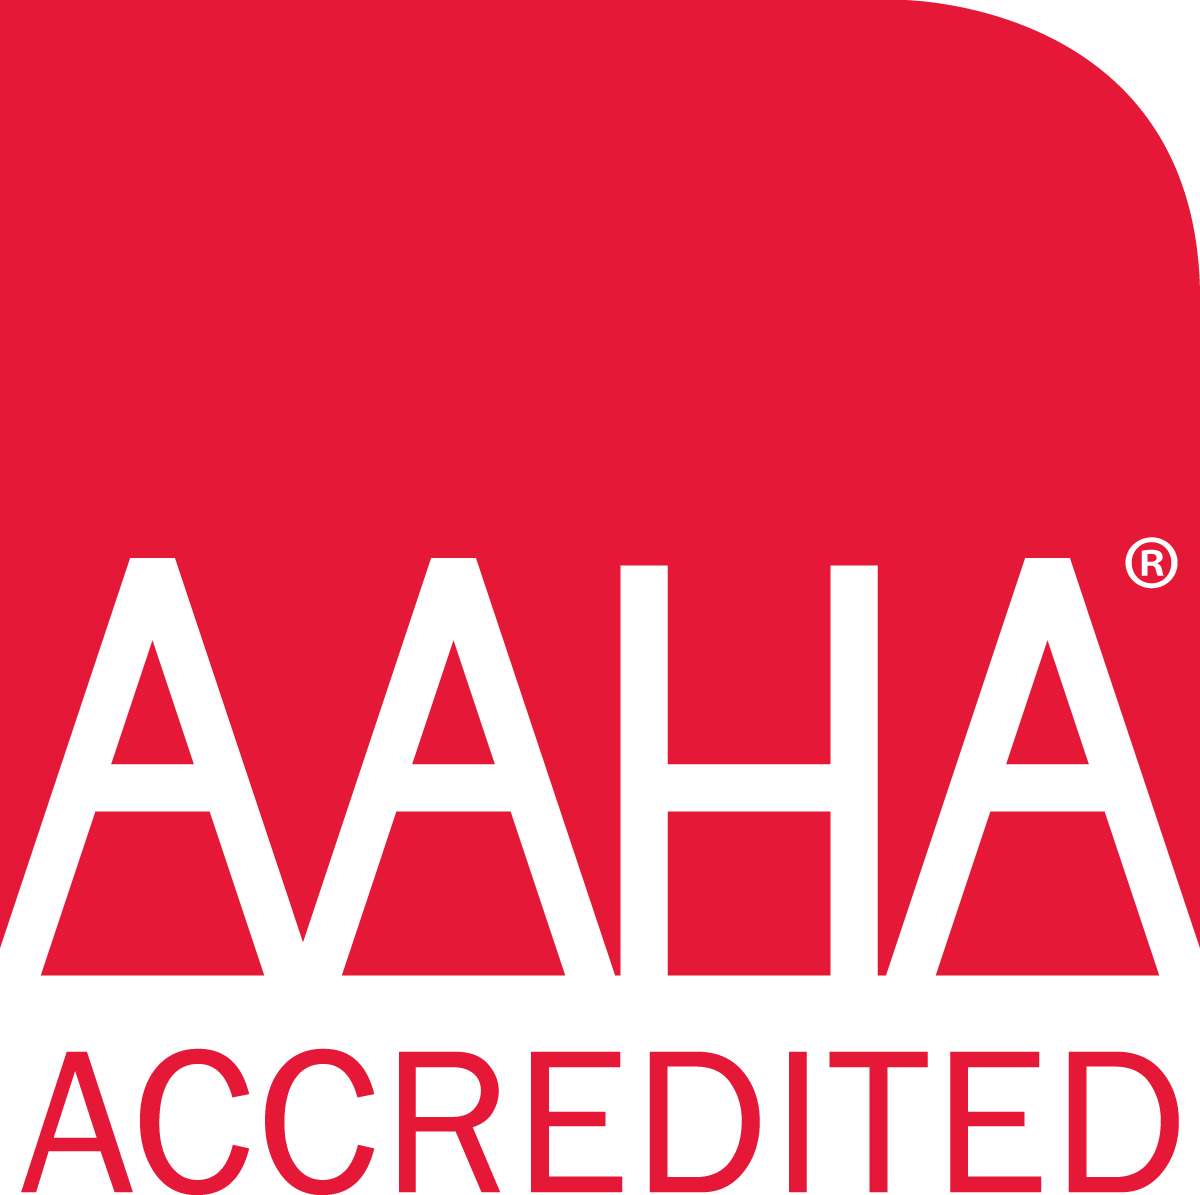 AAHAaccredited_logo_200.png